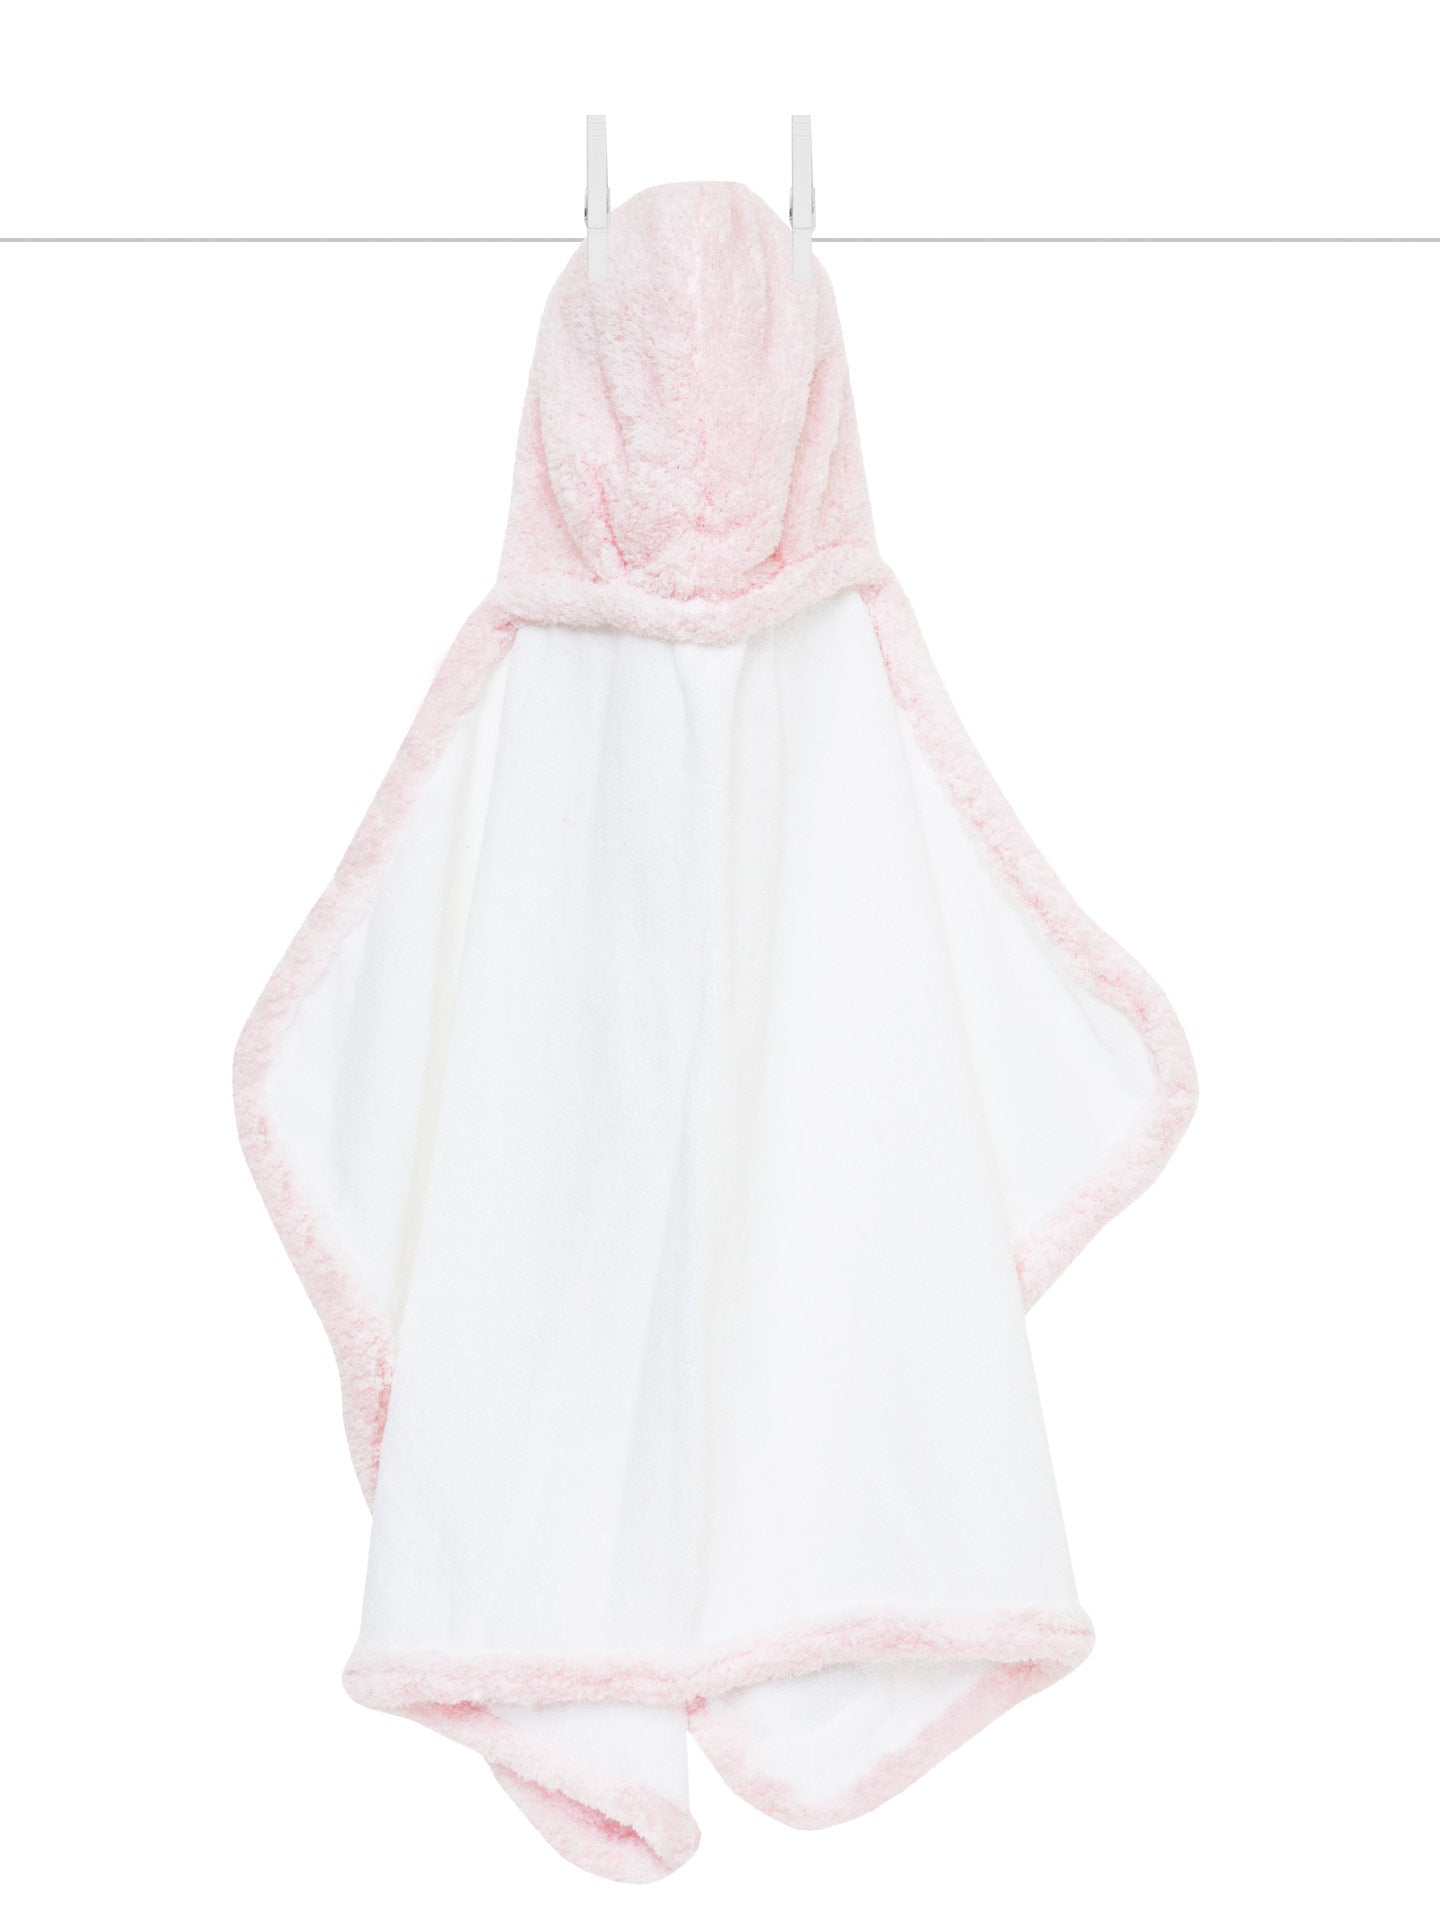 Chenille Hooded Towel- Pink